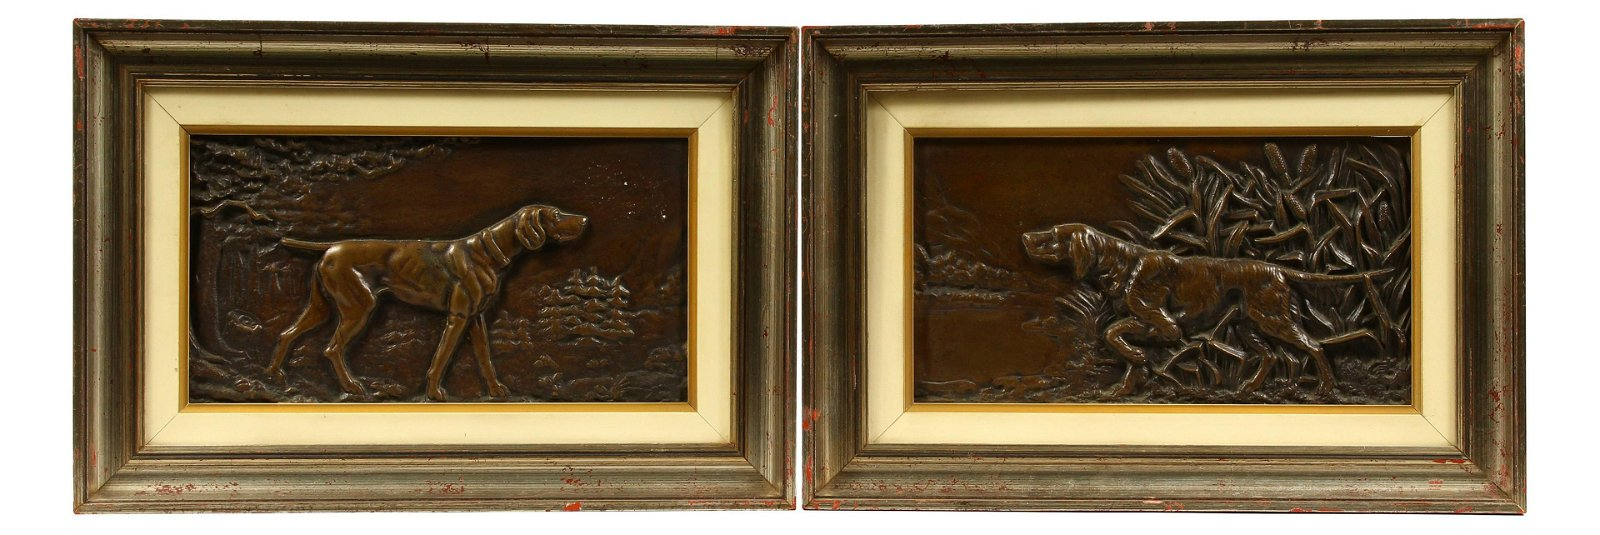 A PAIR OF 20TH CENTURY RELIEF CAST BRONZE PLAQUES,